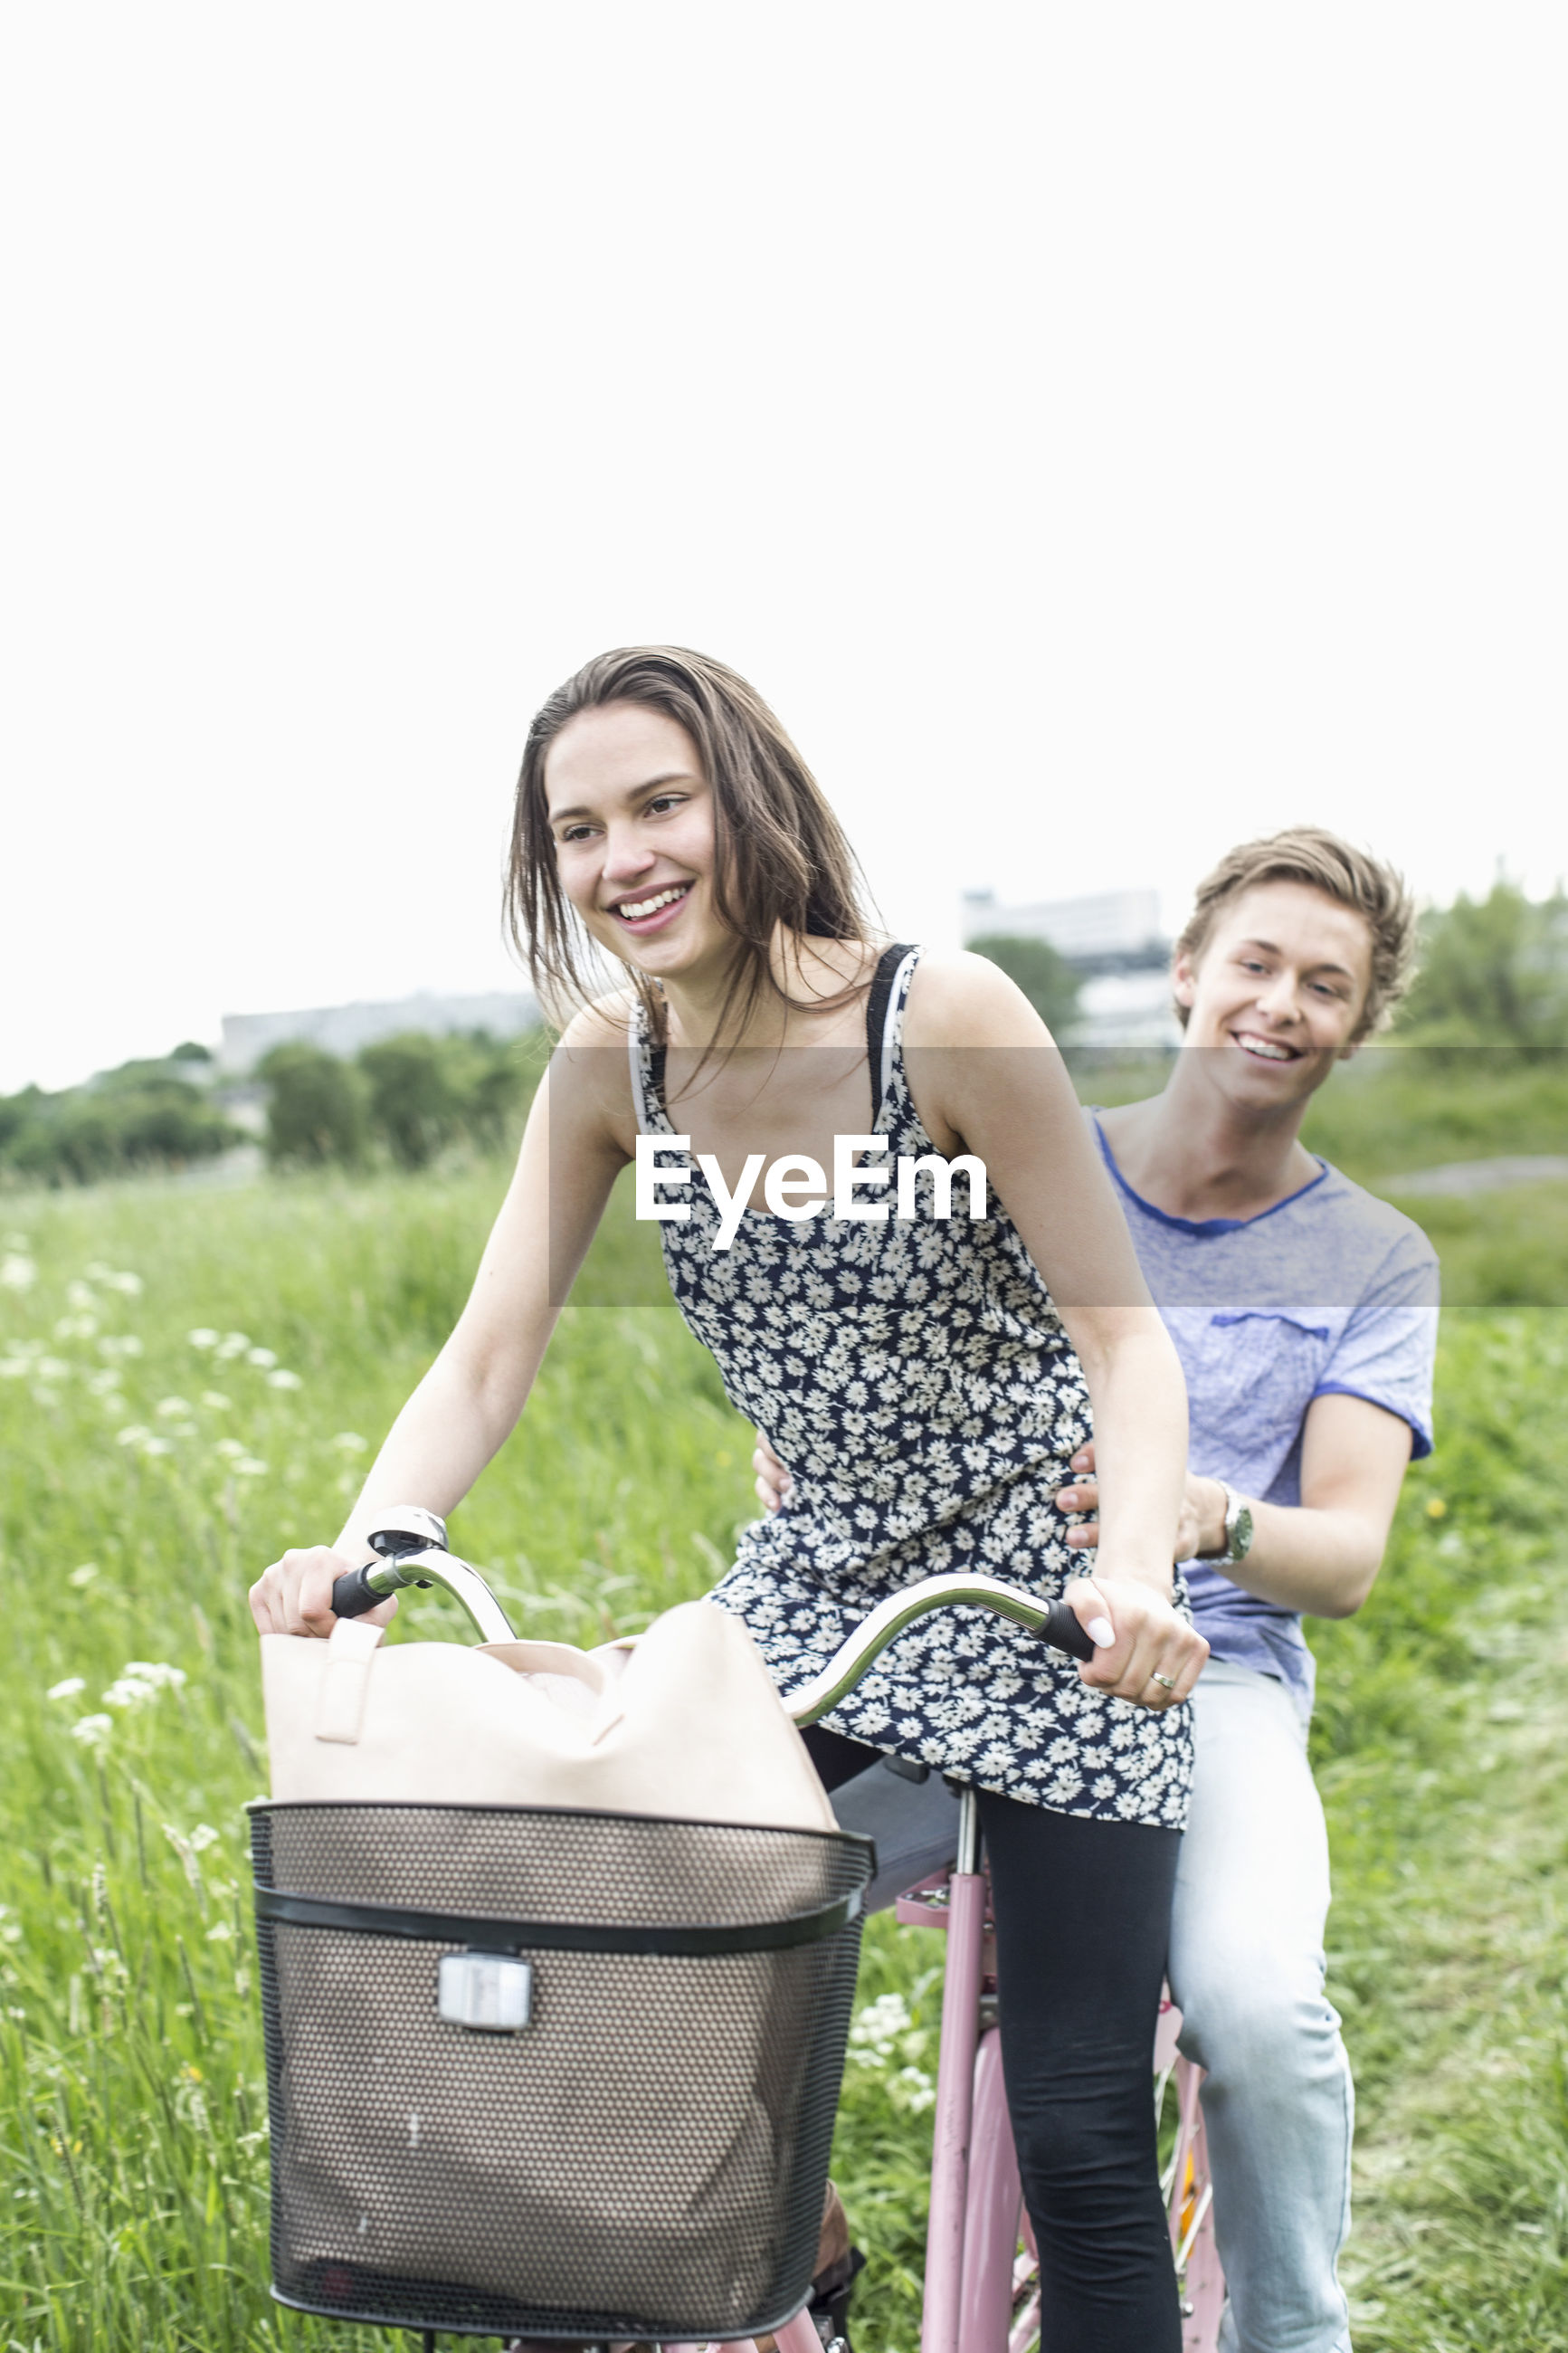 WOMAN SMILING ON FIELD